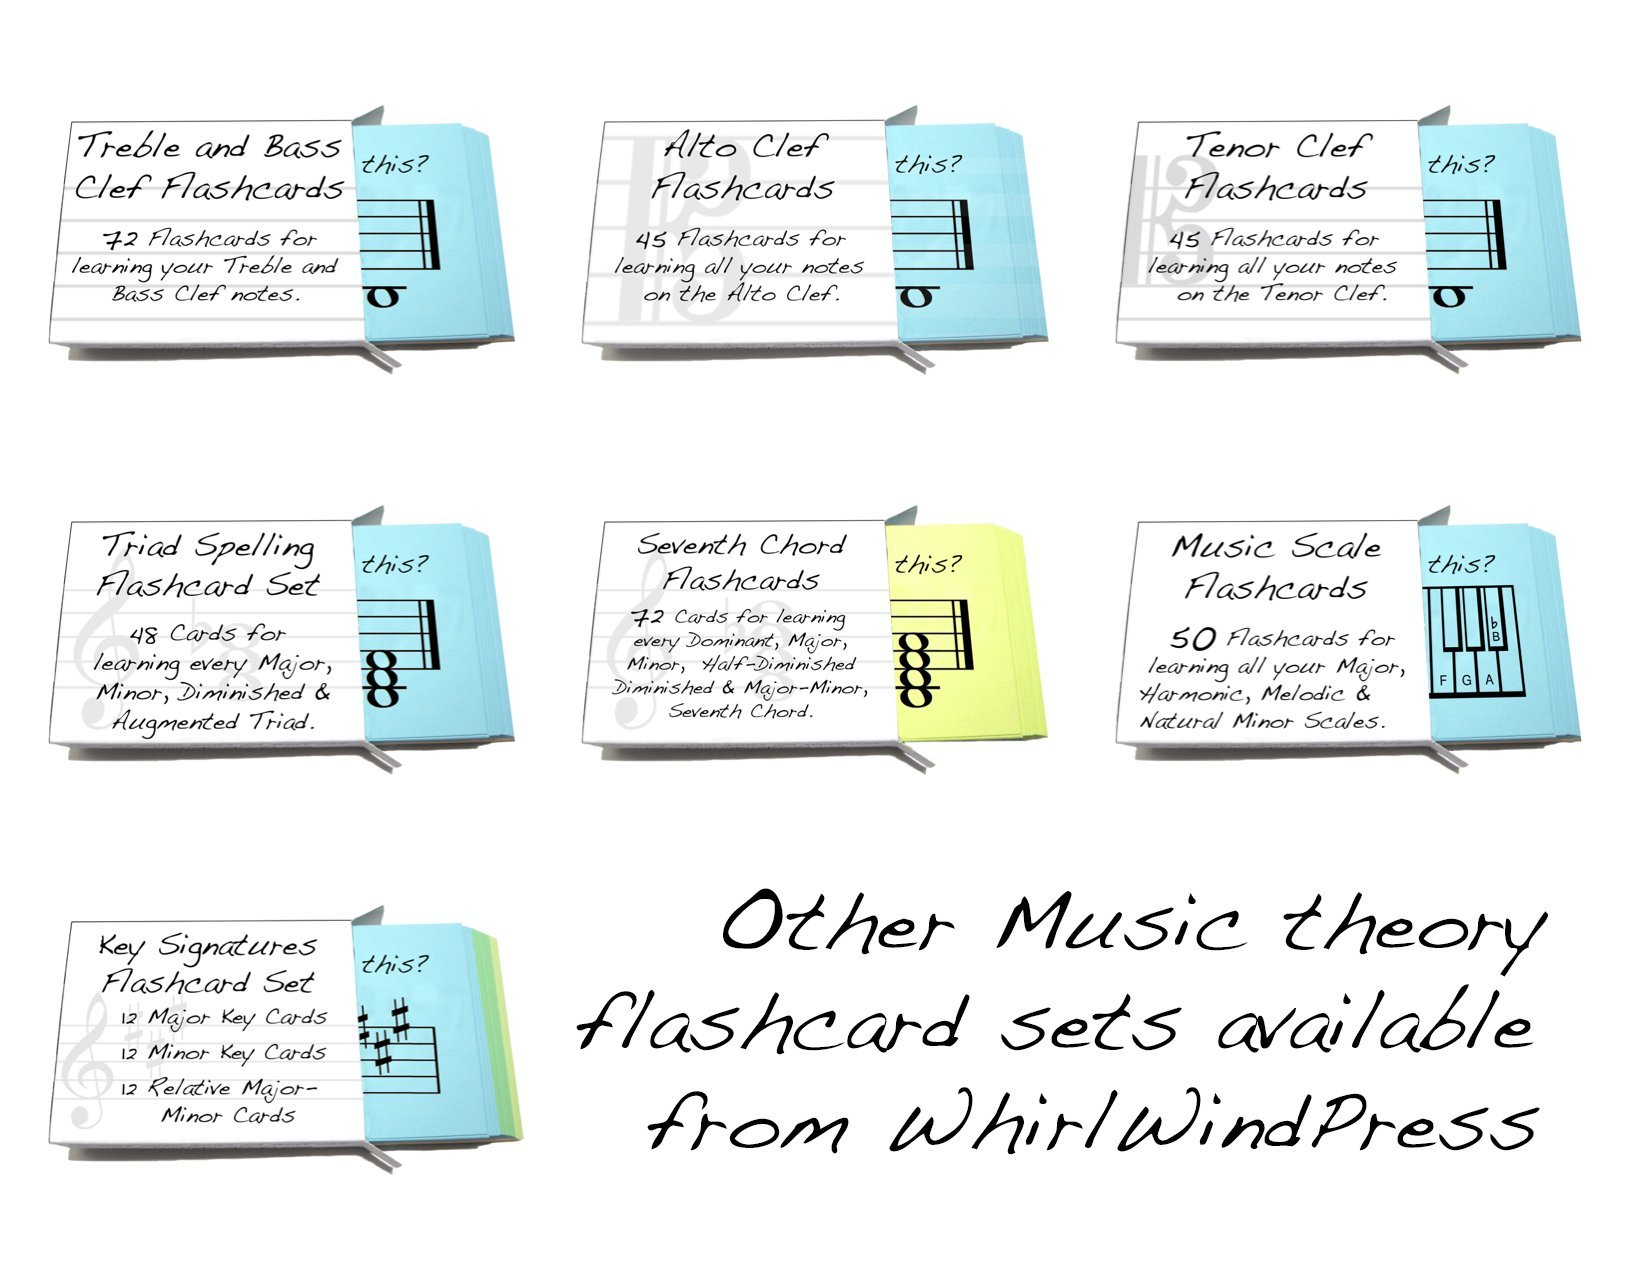 Tenor Clef Note Names Flashcards - Really Fun Design for Learning to Read Music (Bassoon, Bass, Cello, Trombone))) by WhirlWindPress.ca